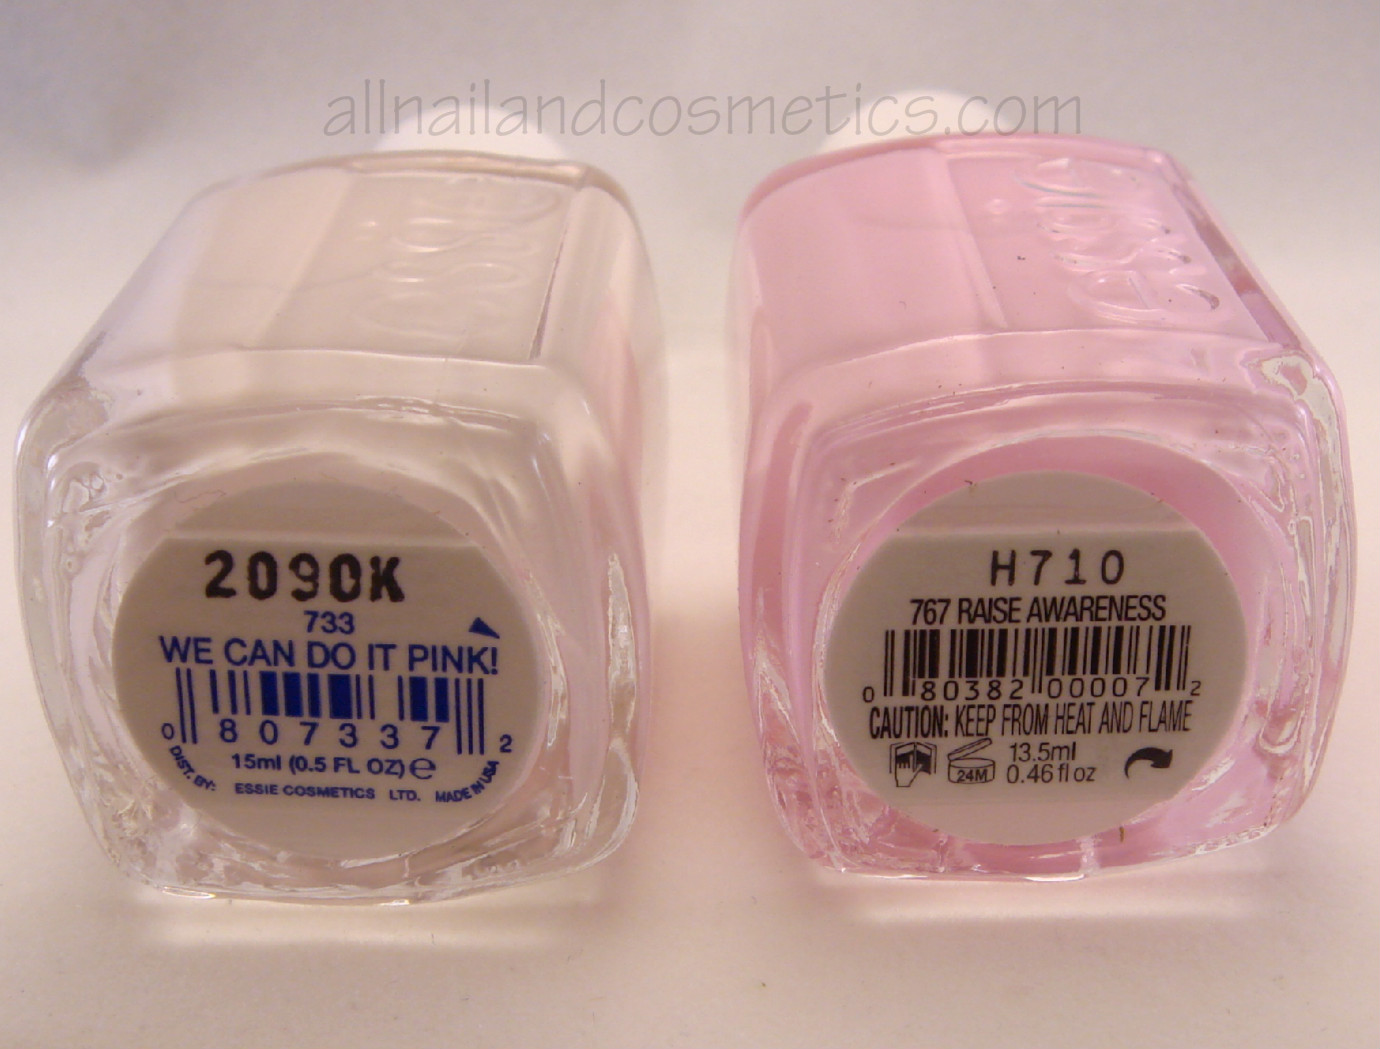 all nail and cosmetics: ***closed winner announced 10/22*** breast